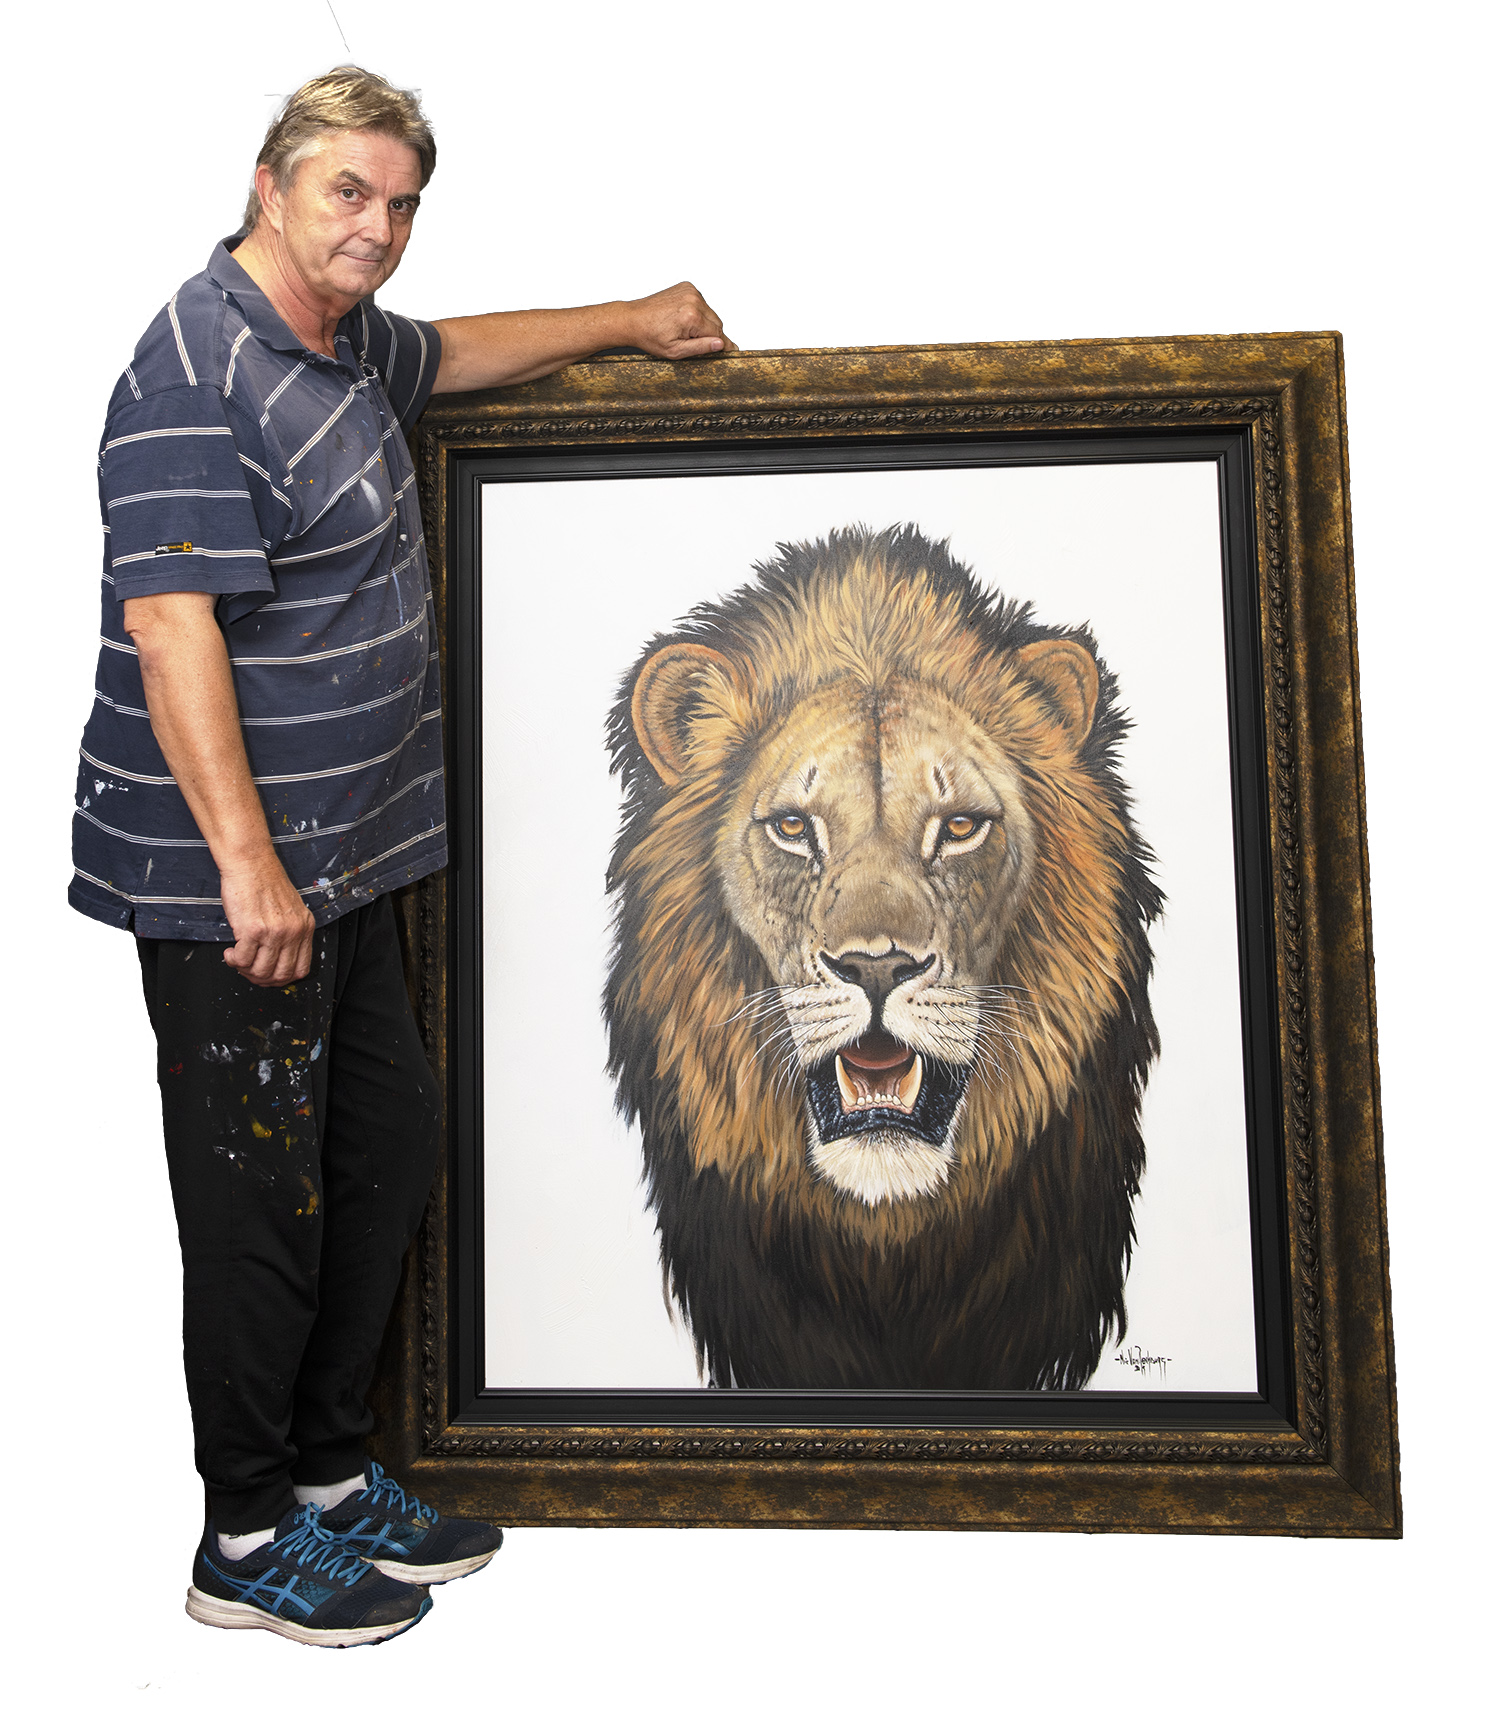 Nic van Rensburg with Lion Pride painting